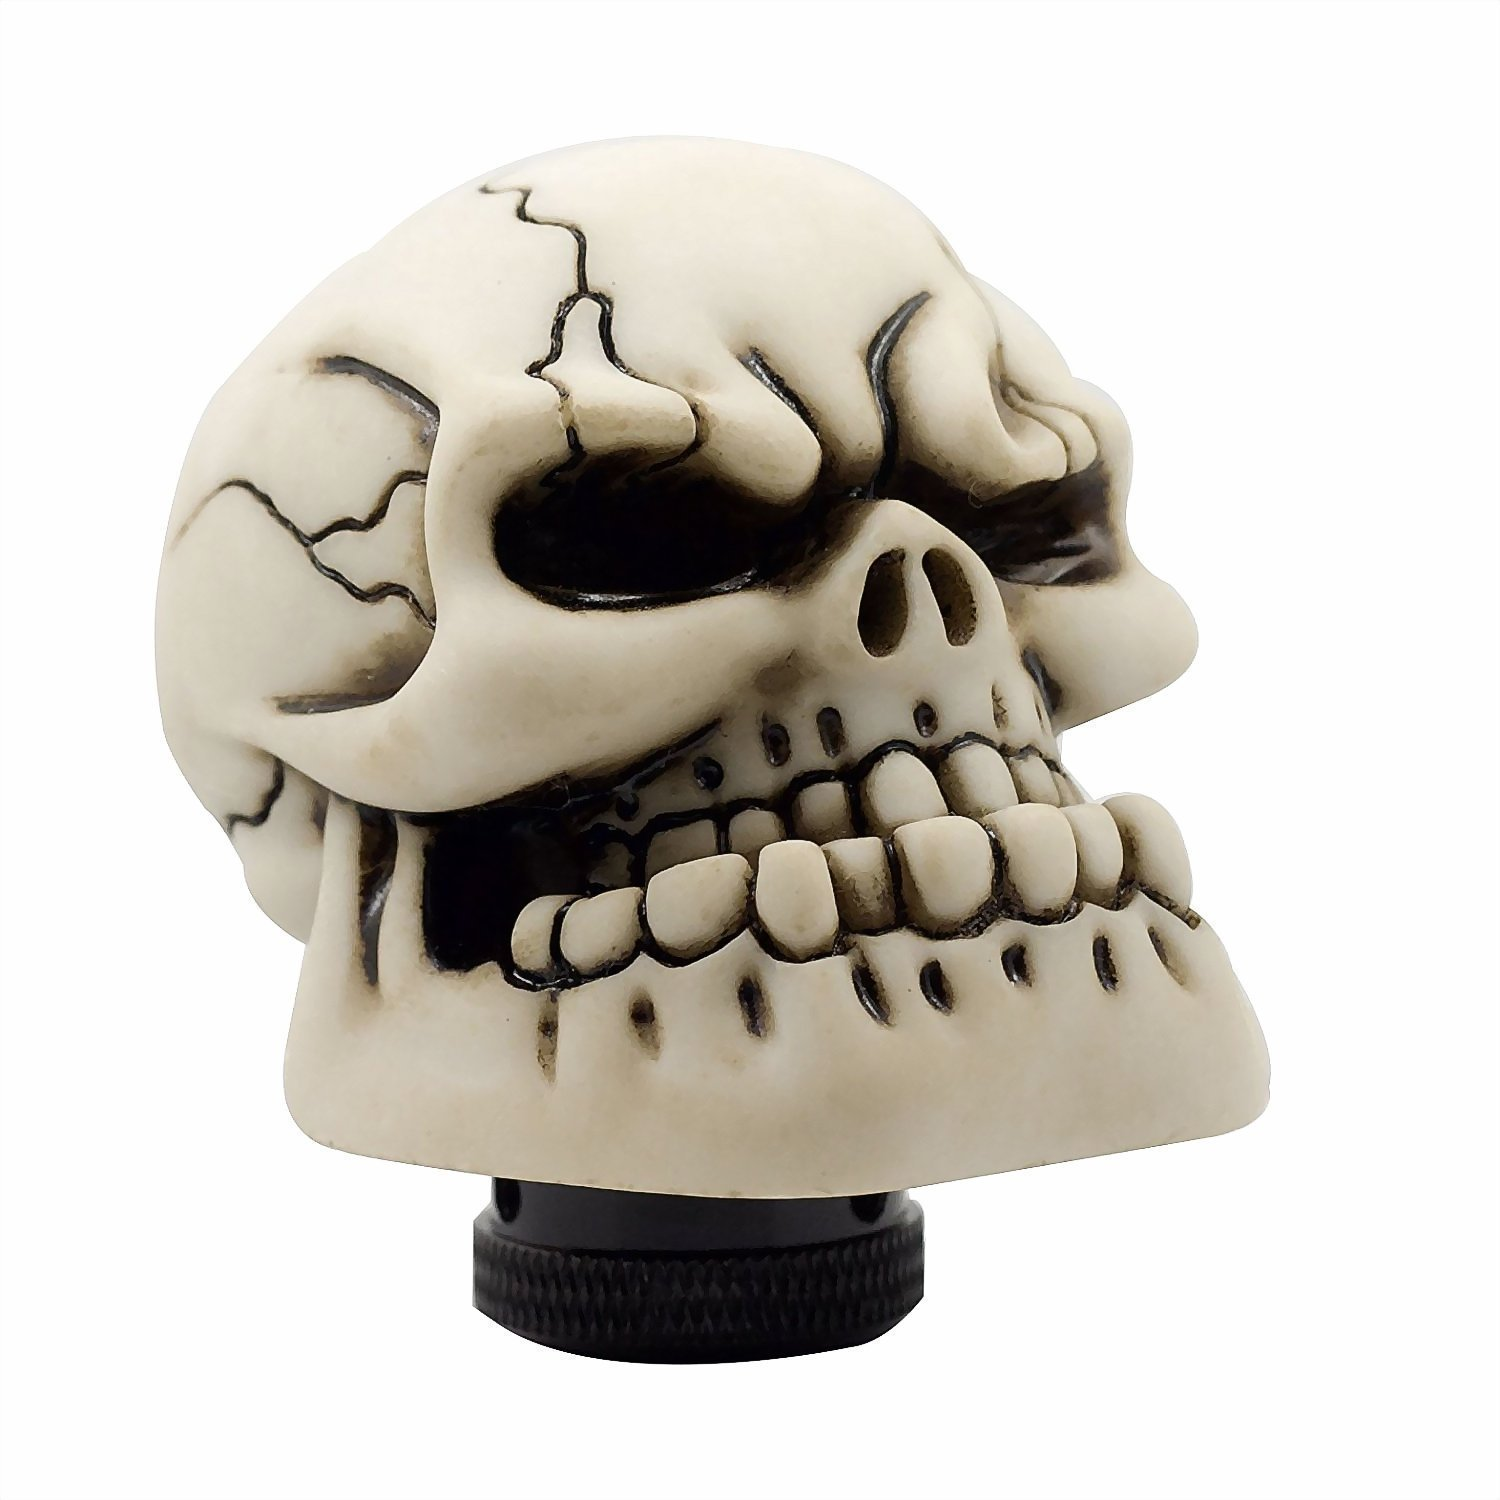 Thickyuan High - end auto parts & Automatic Gear Shift Head Shifter Lever Shift Knob or Shift Knob Interior Accessories Skull Car Manual Shift Knob Manual(Yellow)